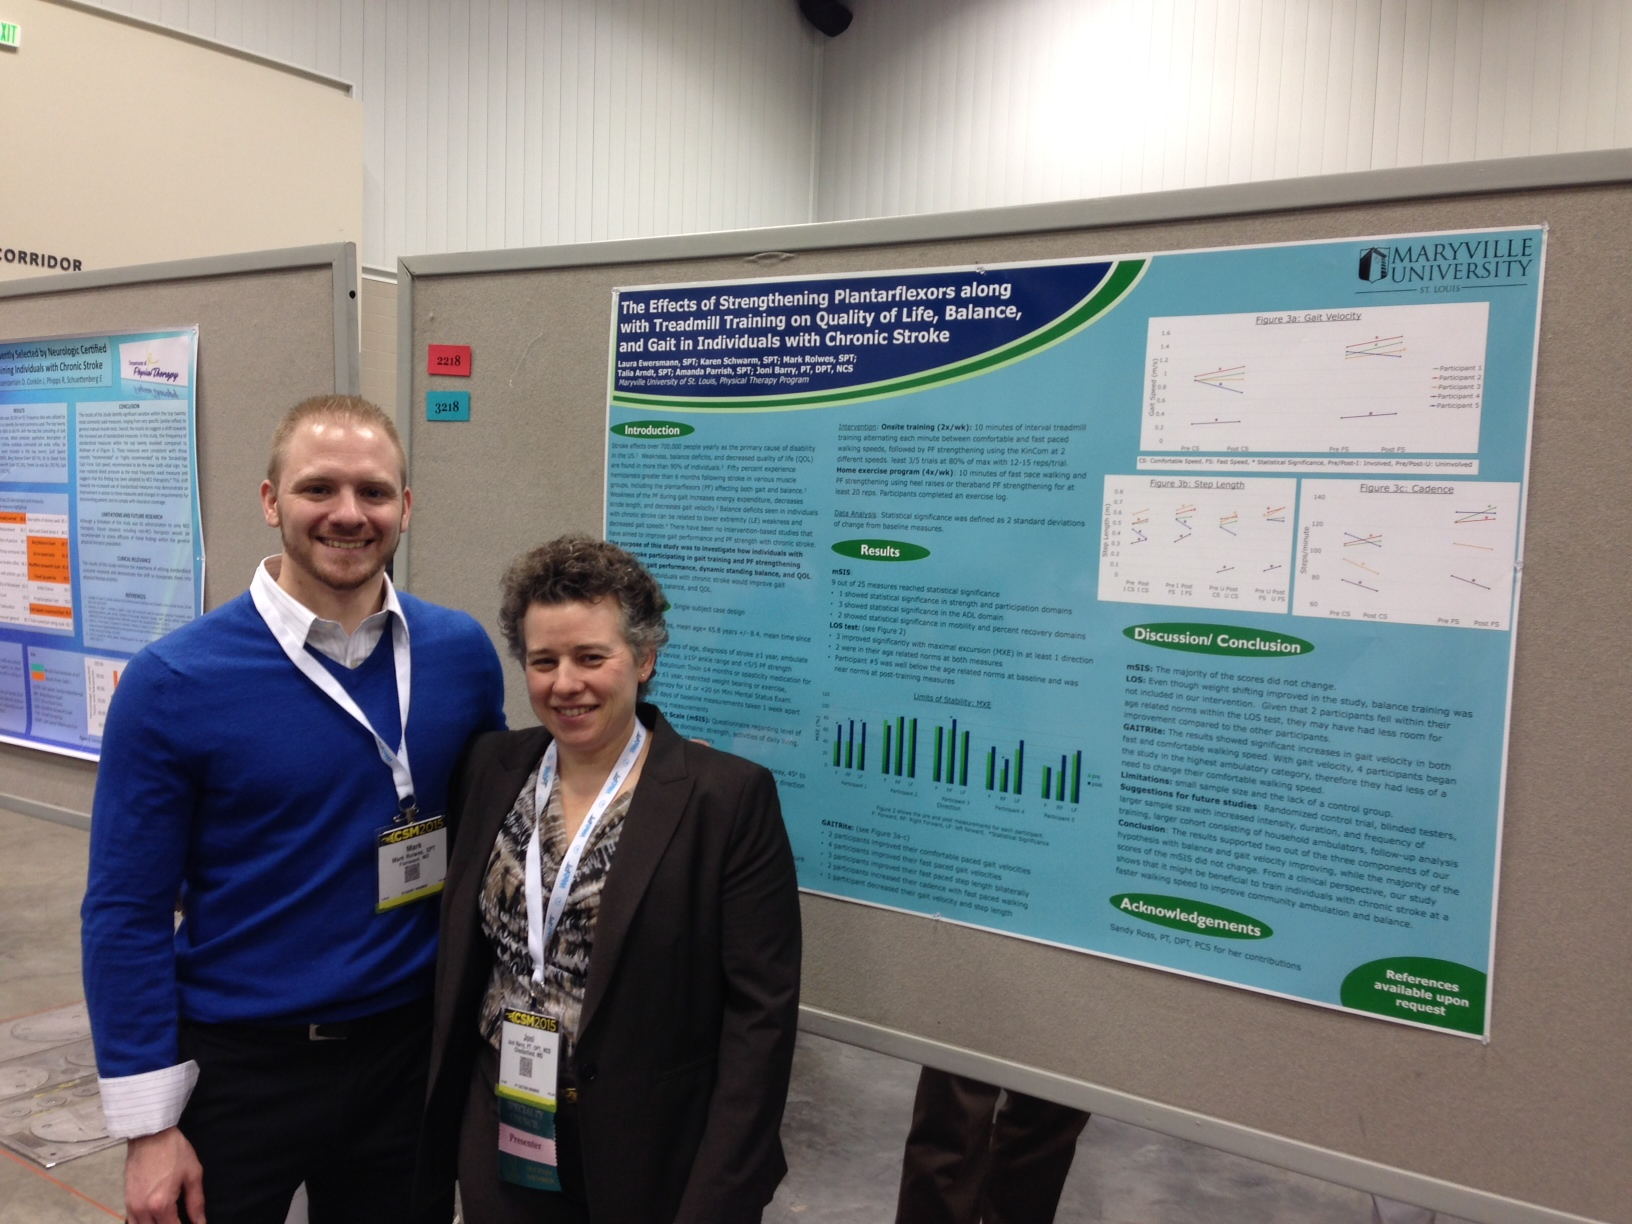 Mark Rolwes, DPT (Class of 2014) and Joni Barry, PT, DPT, NCS